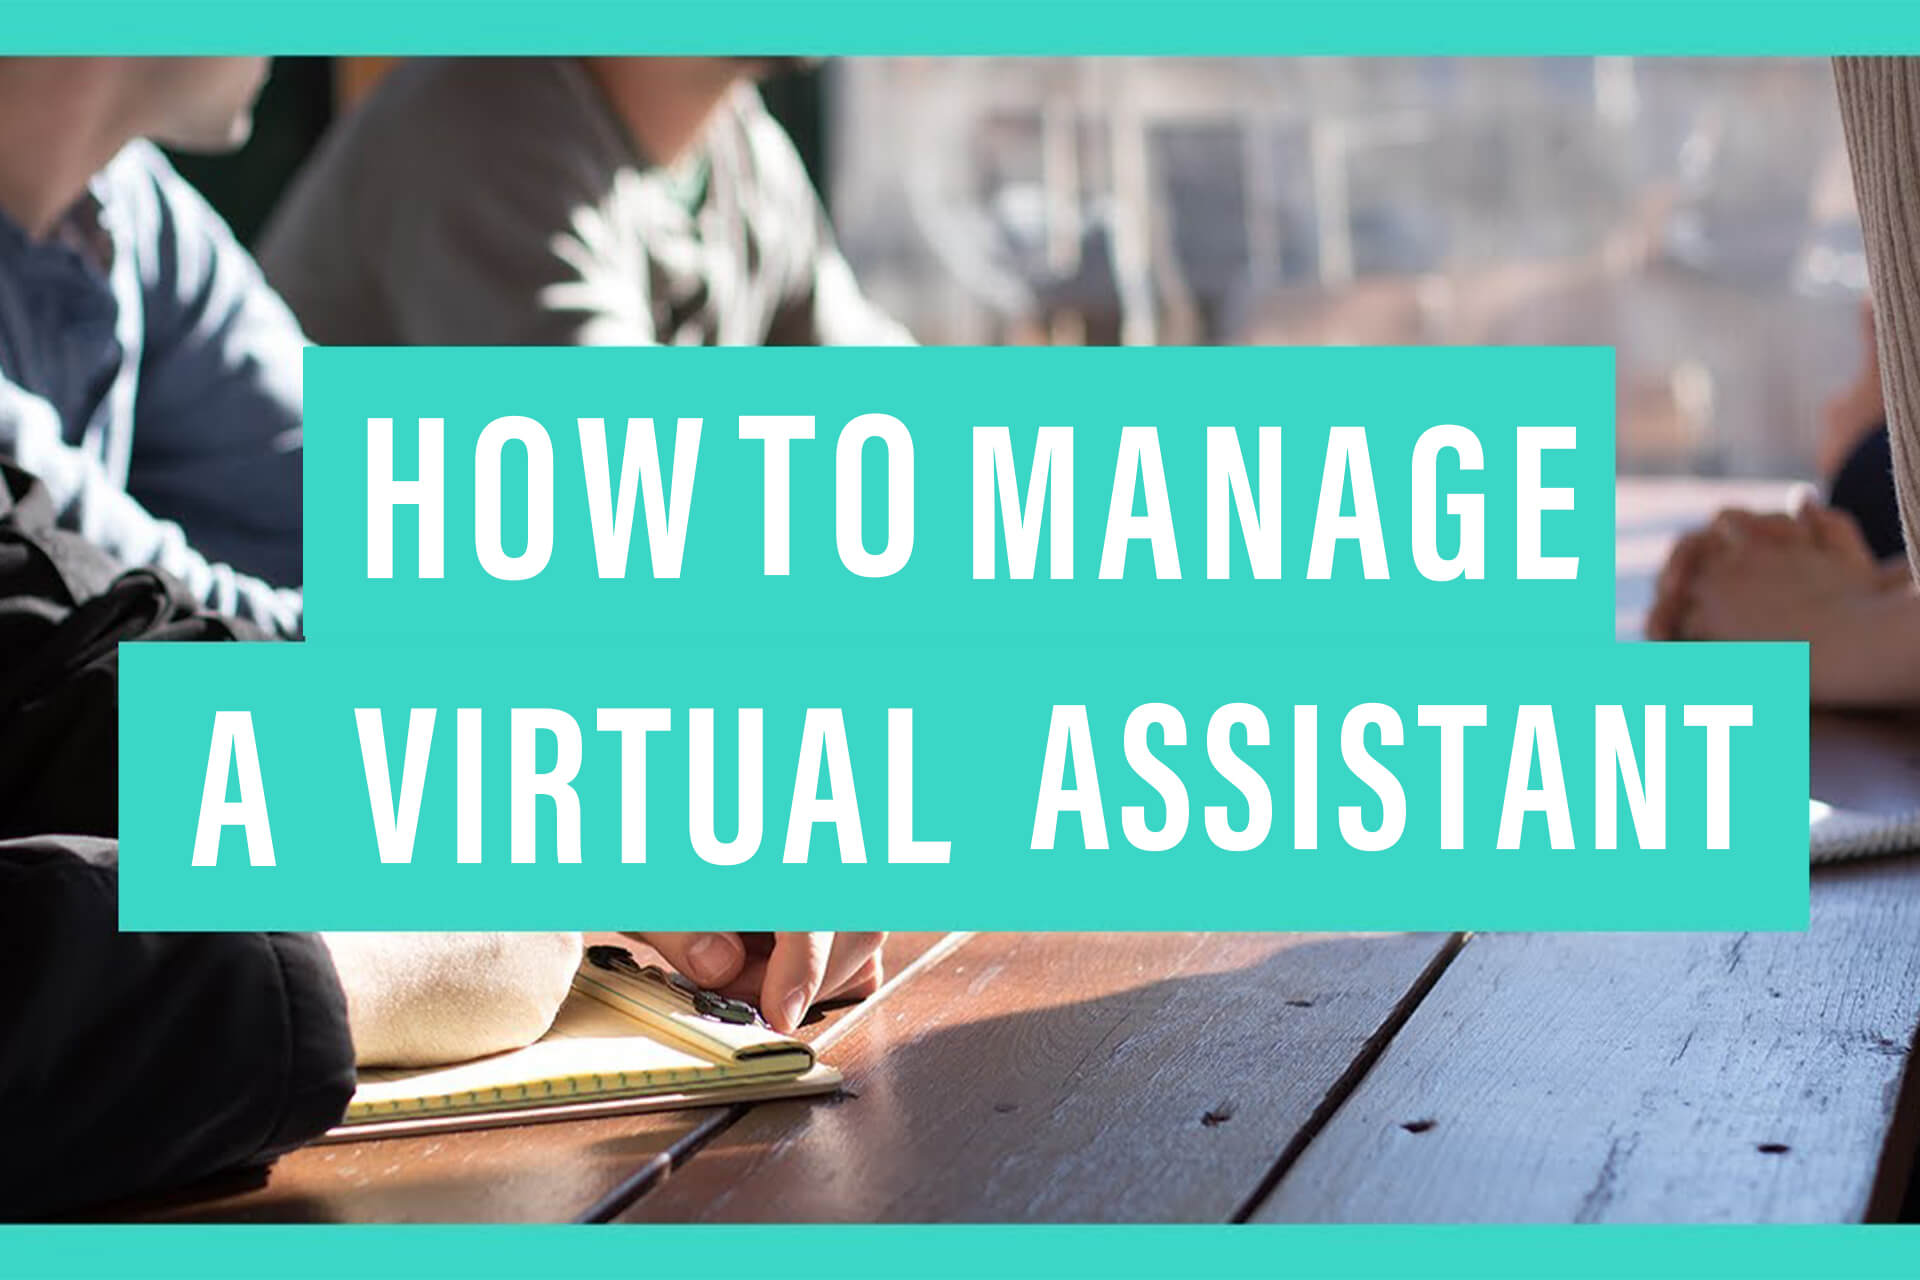 How To Manage A Virtual Assistant